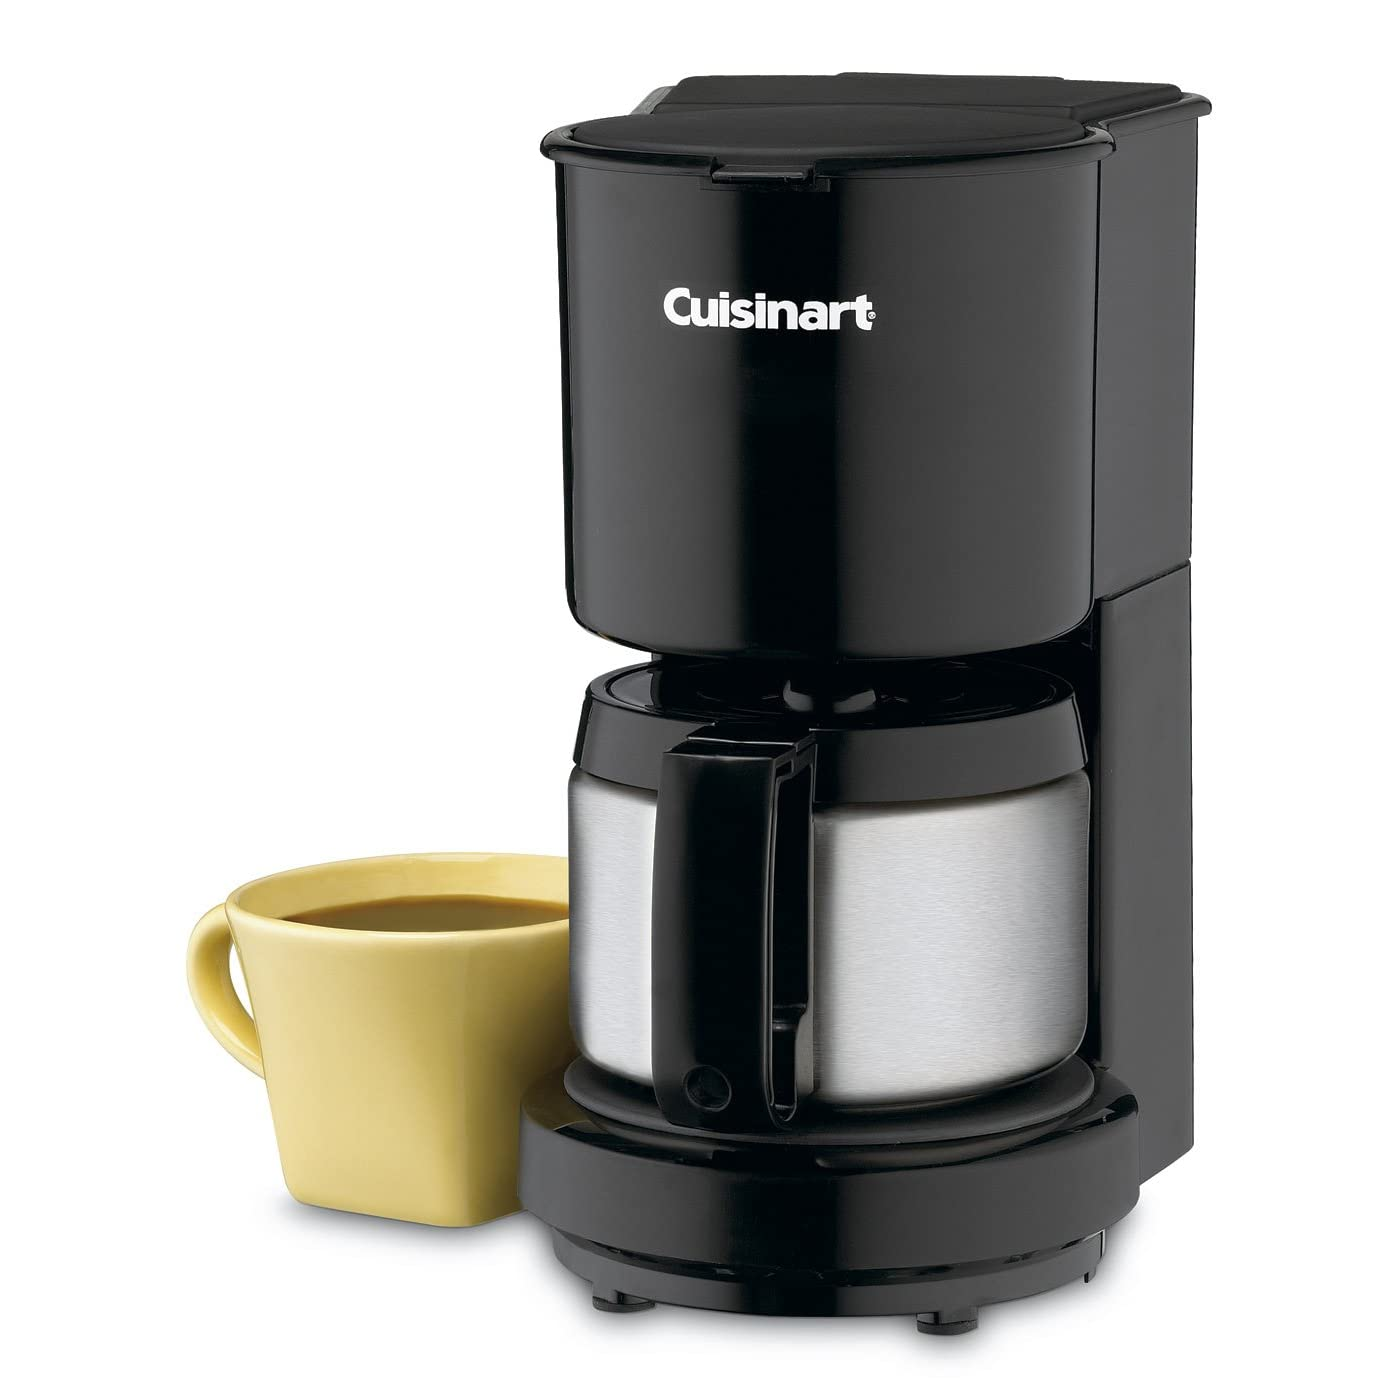 Front view of a Cuisinart 4-cup coffee maker